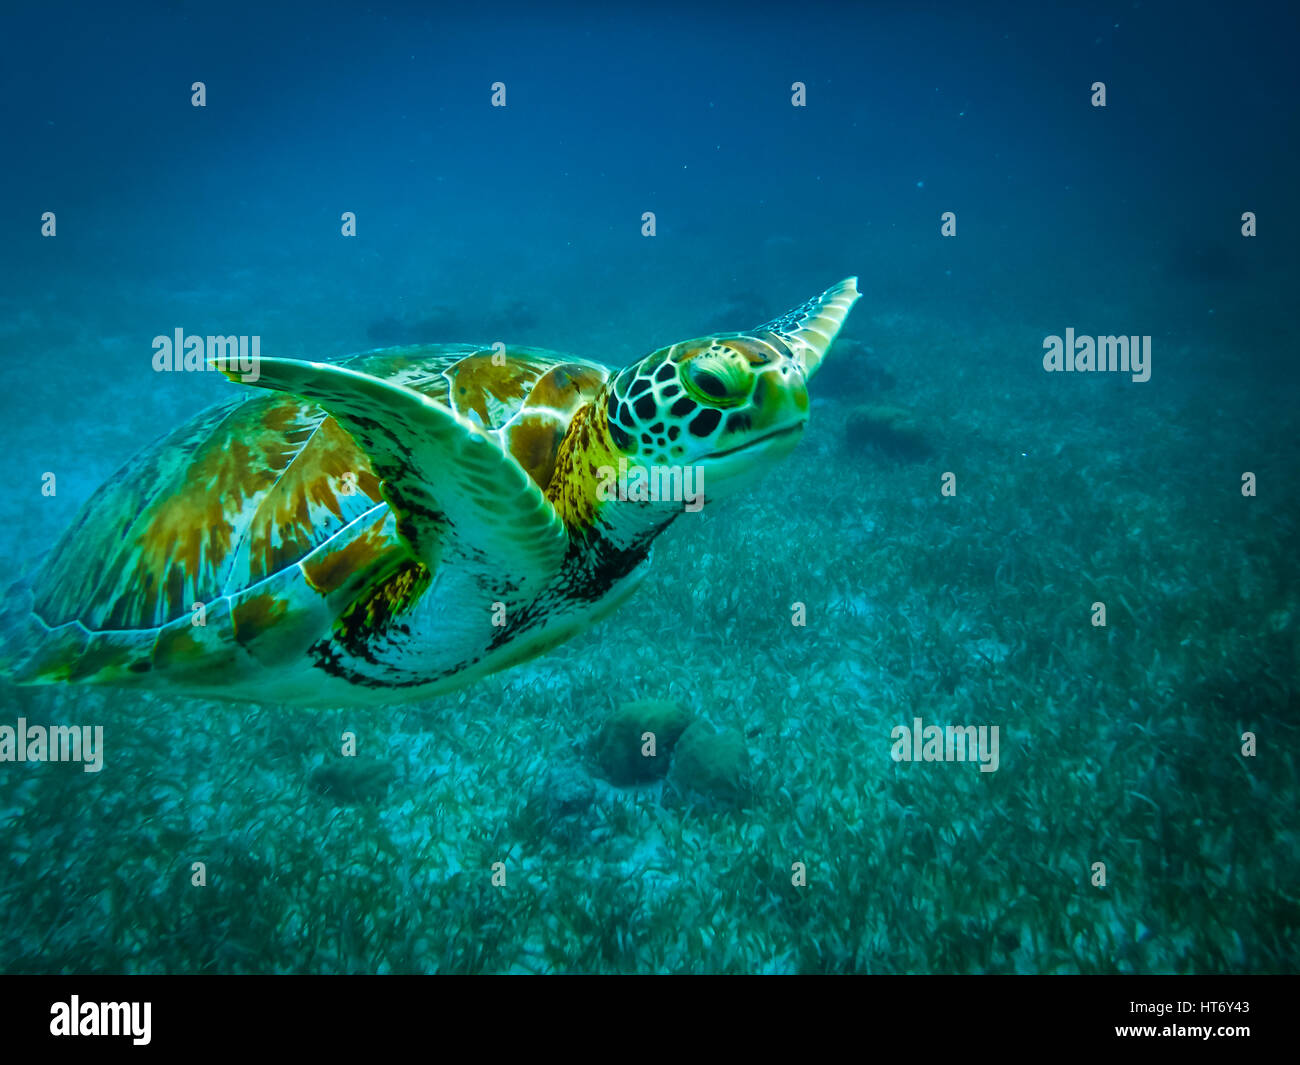 Sea turtle in caribbean sea - Caye Caulker, Belize - Stock Image